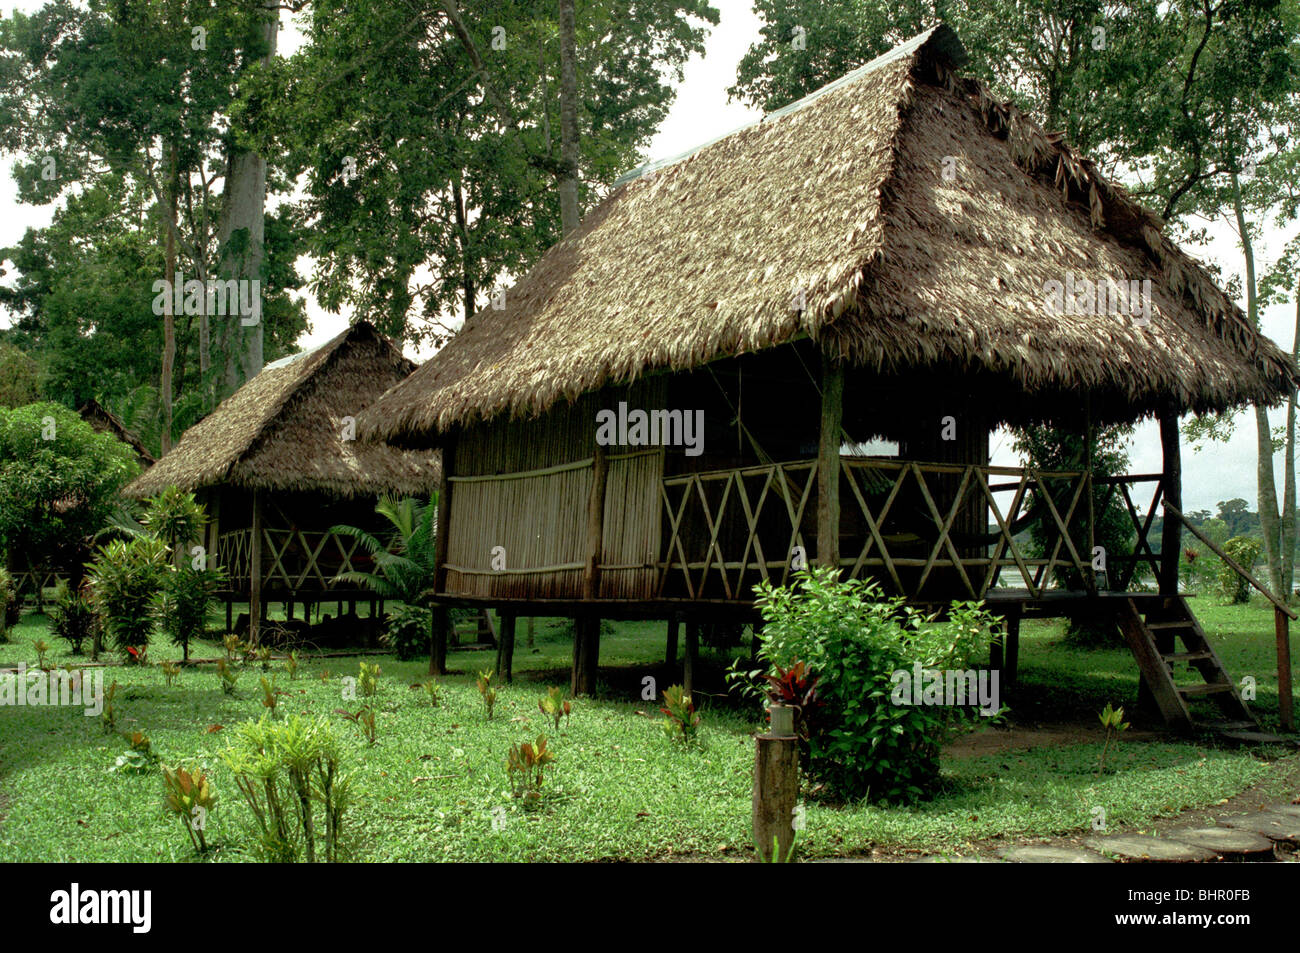 Chalet in Peruvian Amazon forest circa 1997 - Stock Image